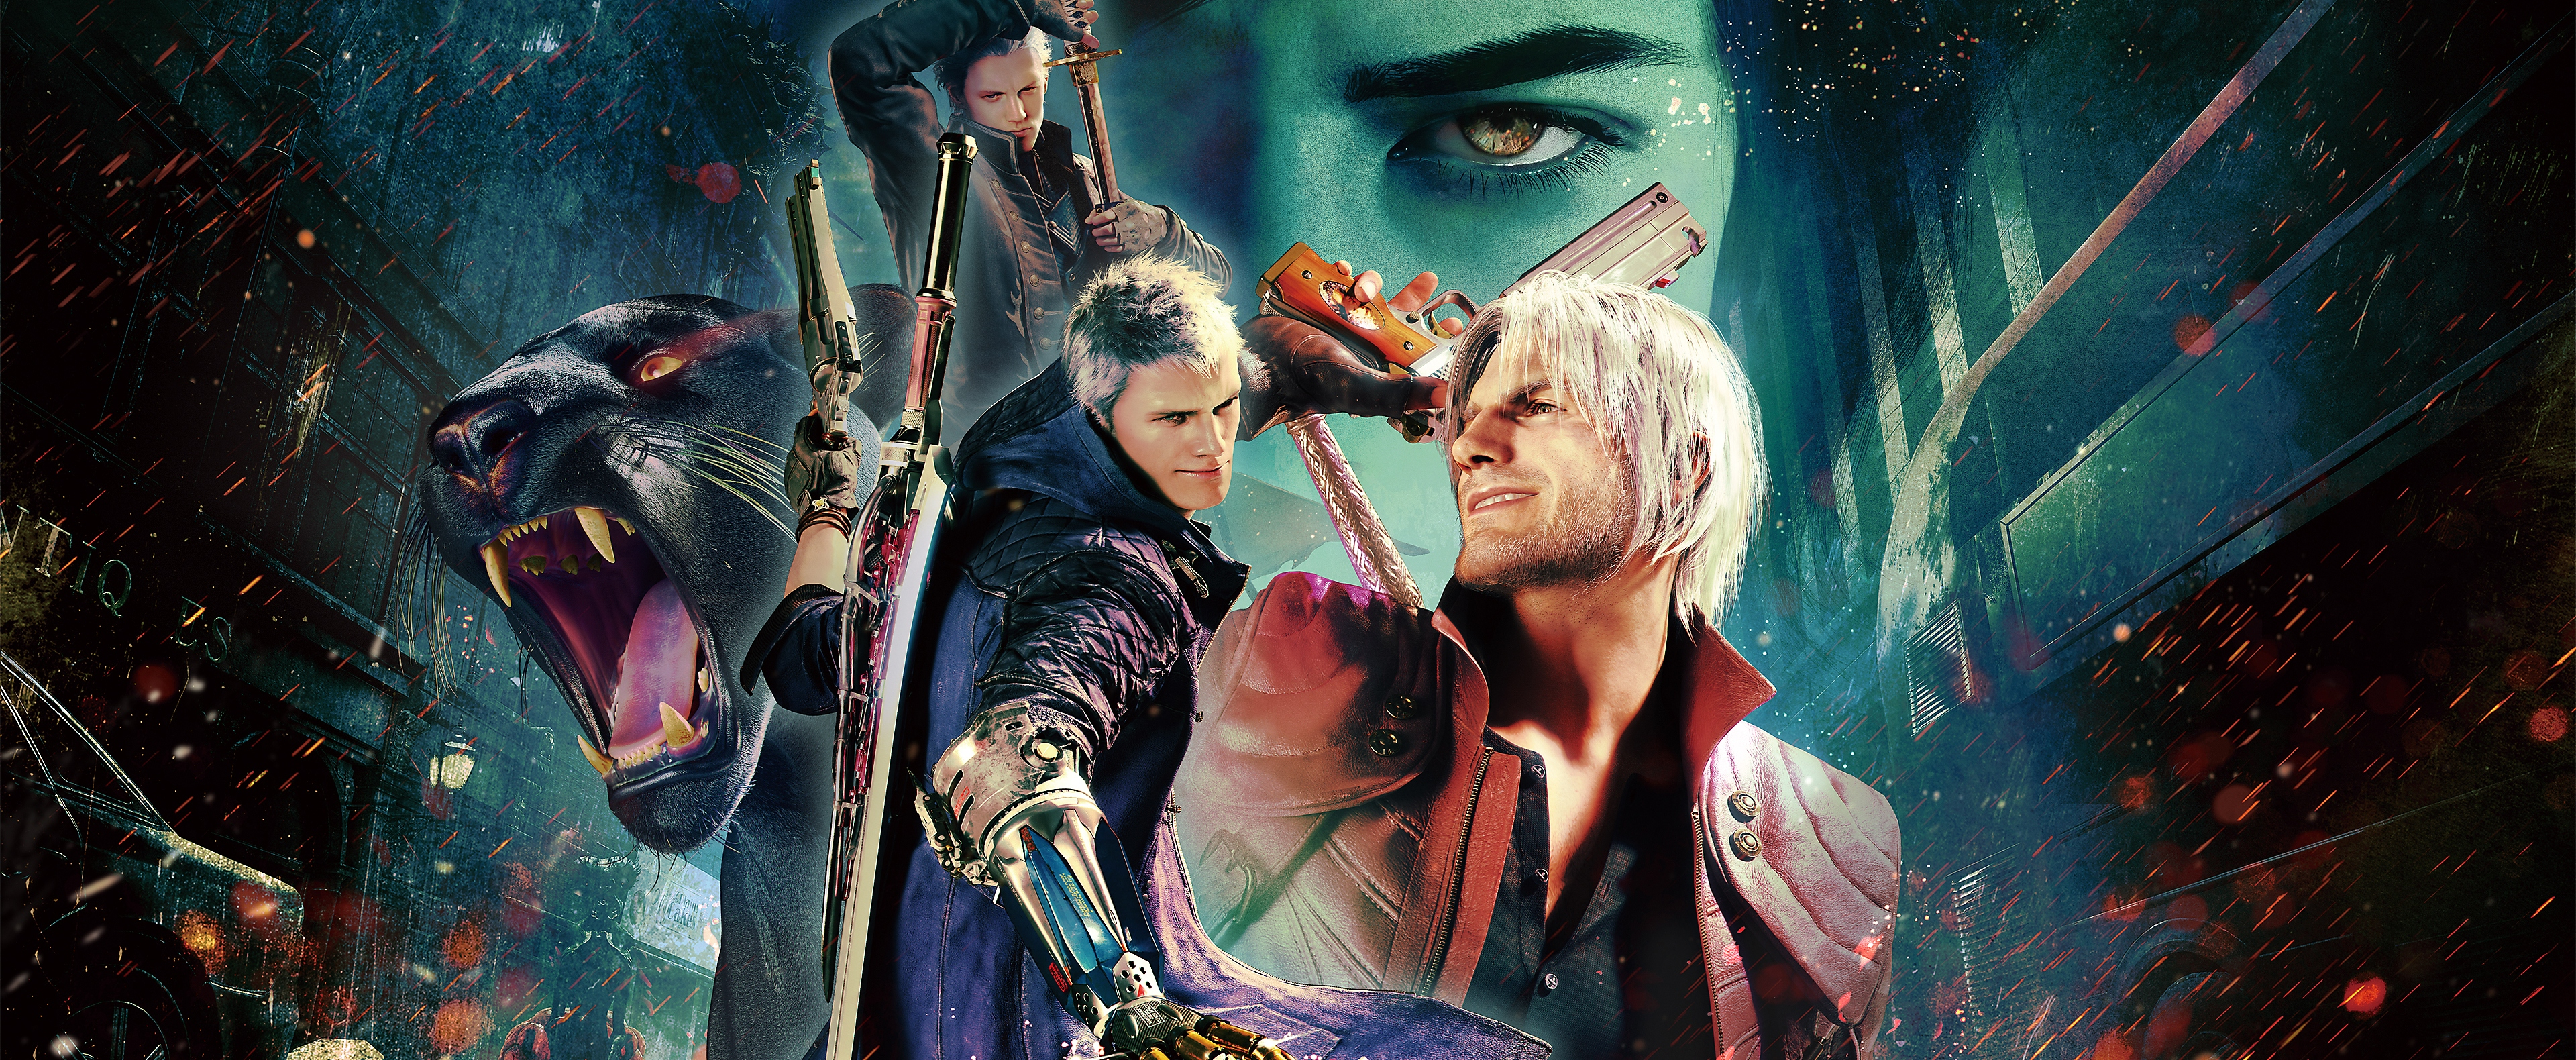 Devil May Cry 5: Special Edition - ilustraţie tematică